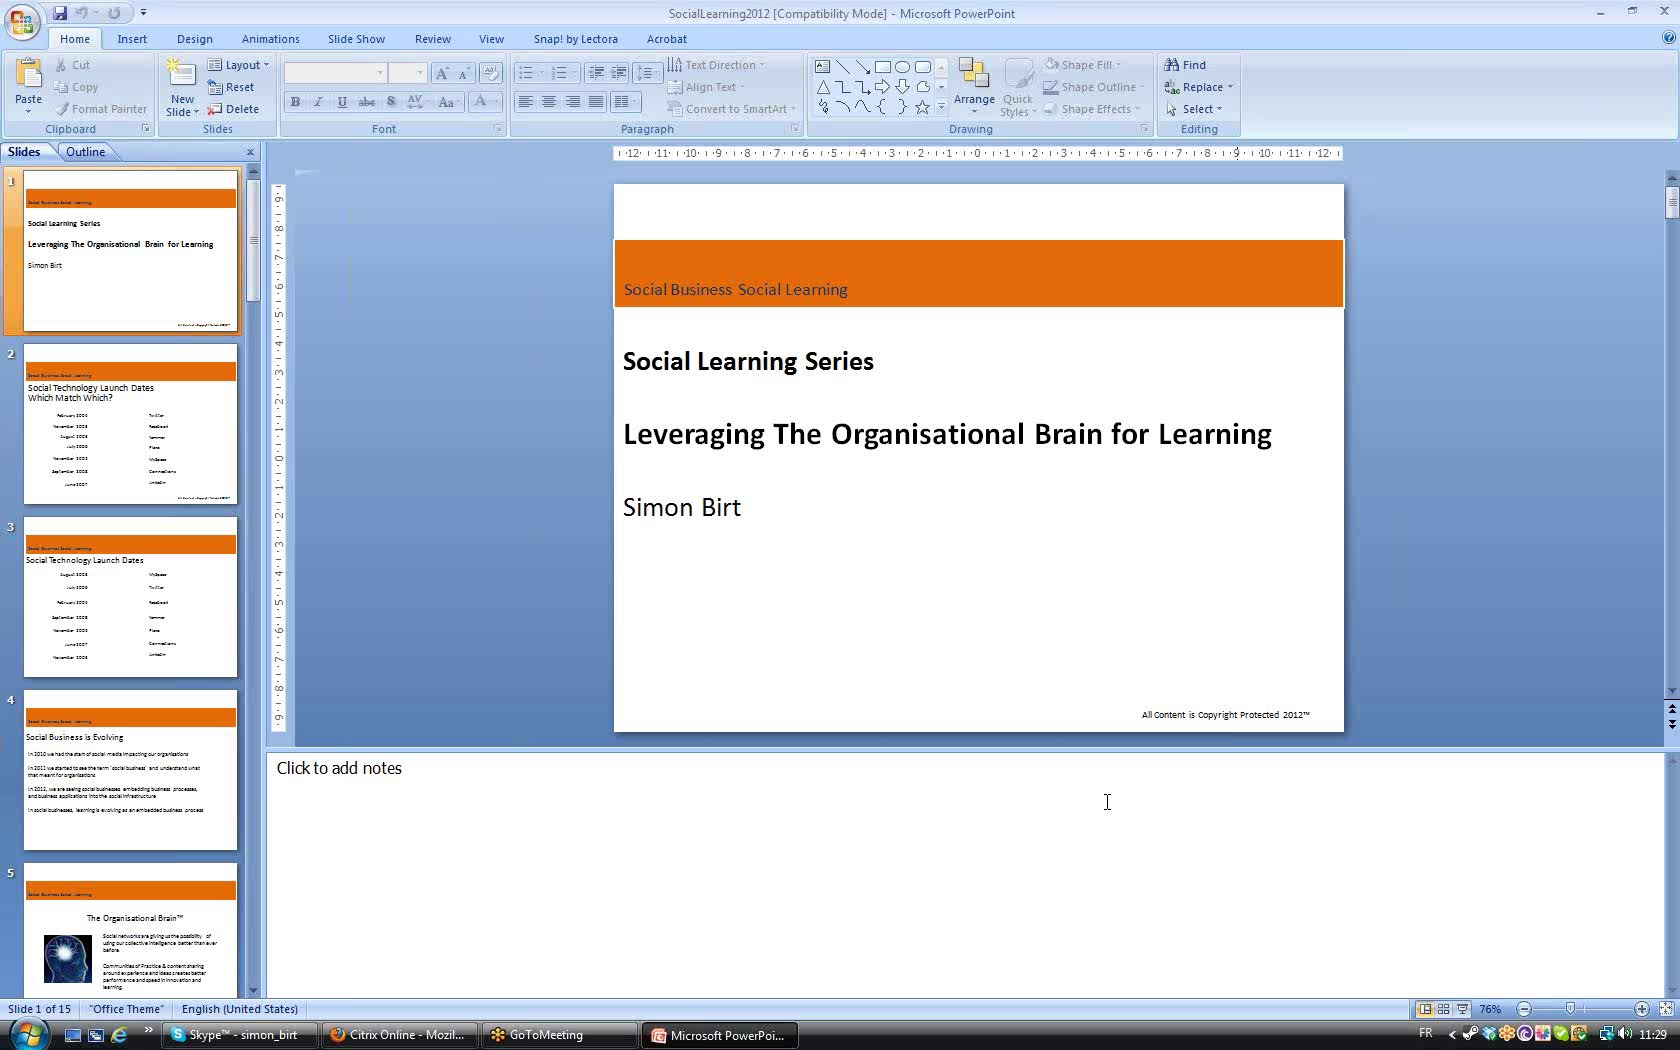 Call With Reed Elsevier On Social Learning & Knowledge Sharing